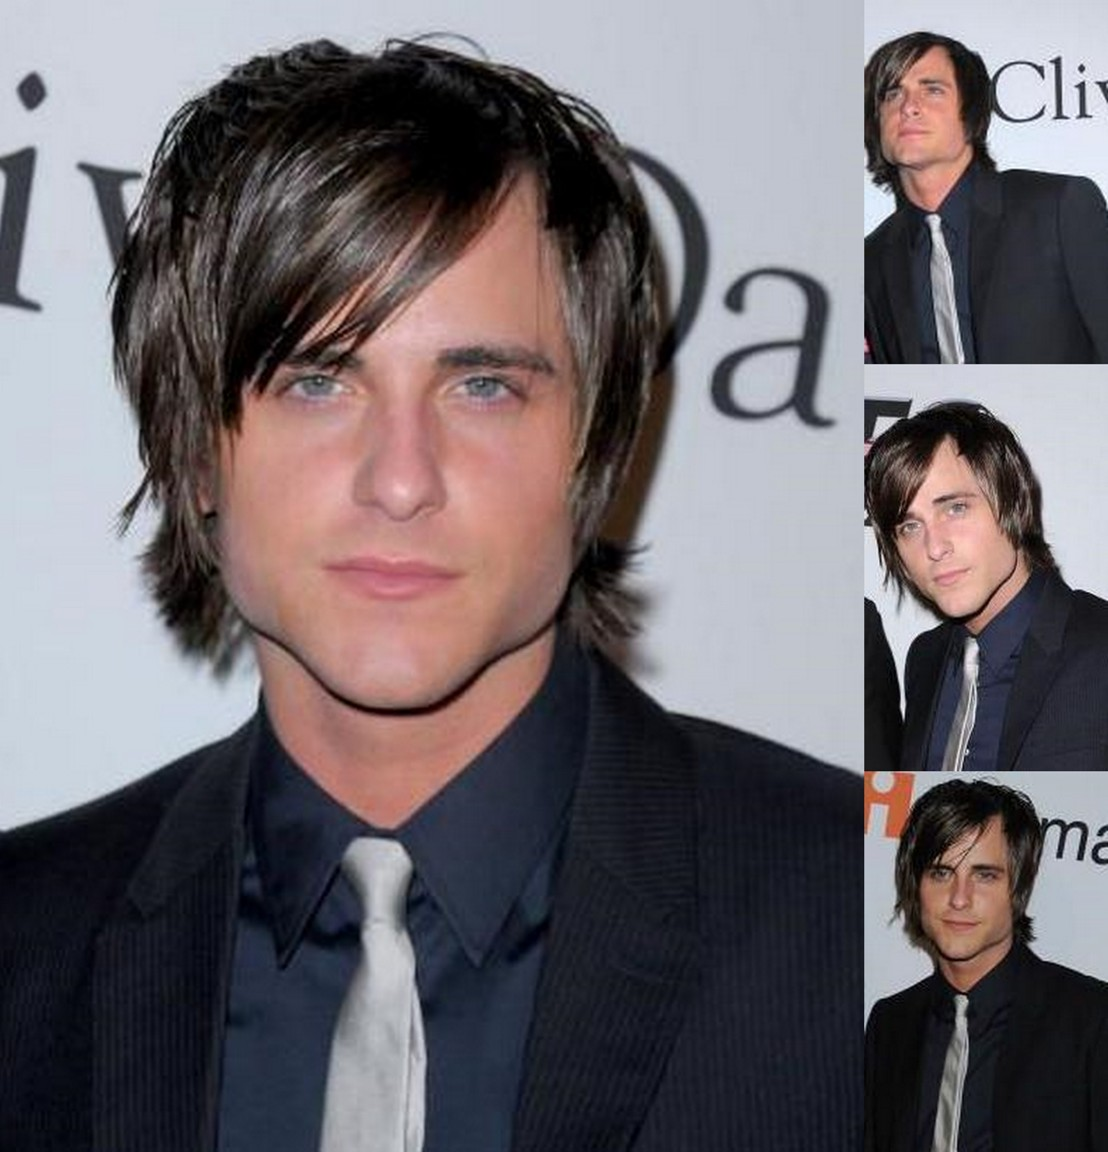 Clive Davis Pre-Grammy Party (30 Jan 10)